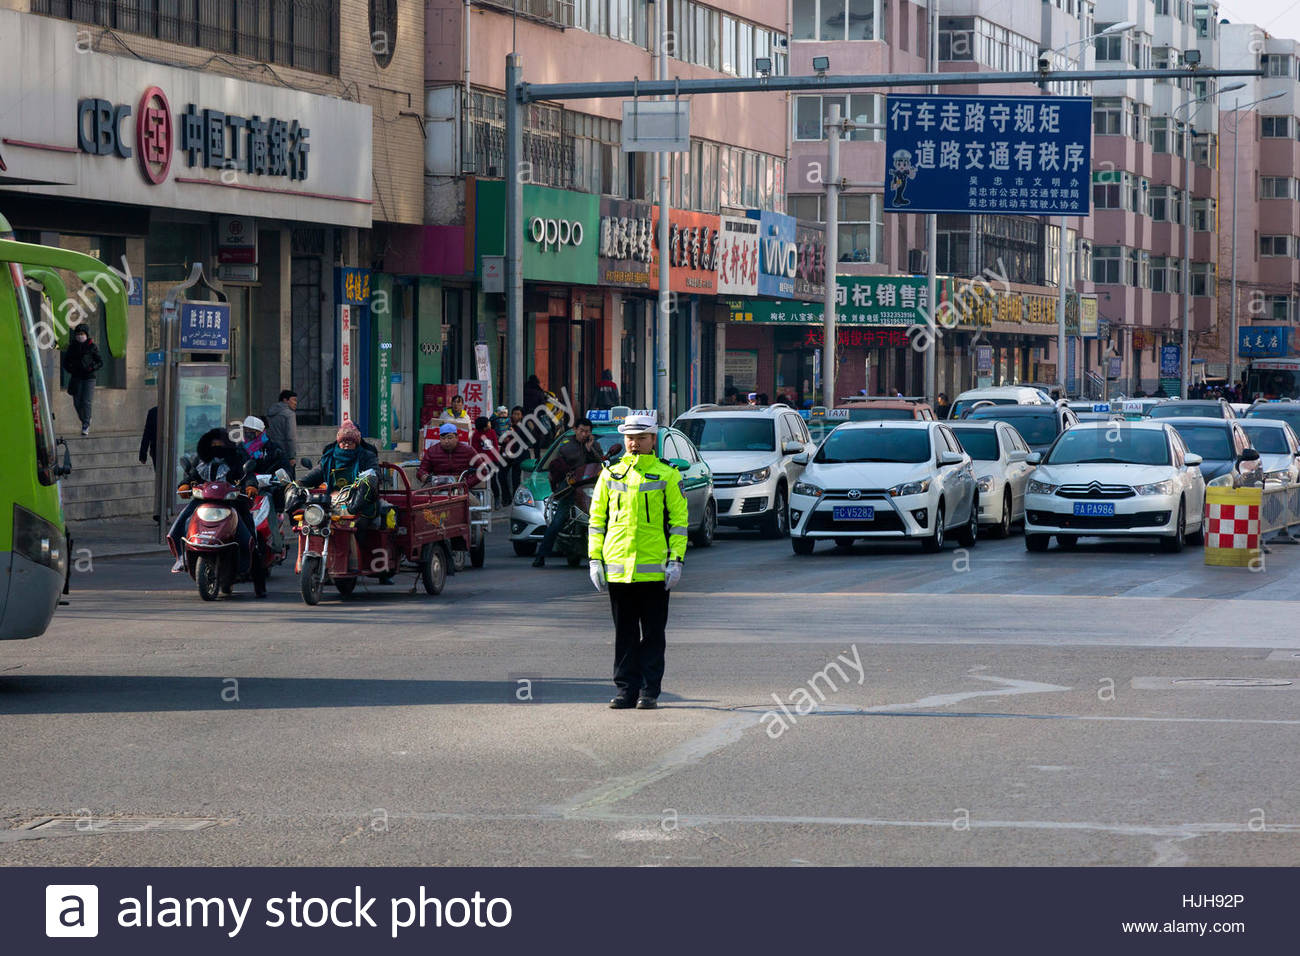 Police control at traffic junction, Wuzhong, Ningxia, China - Stock Image